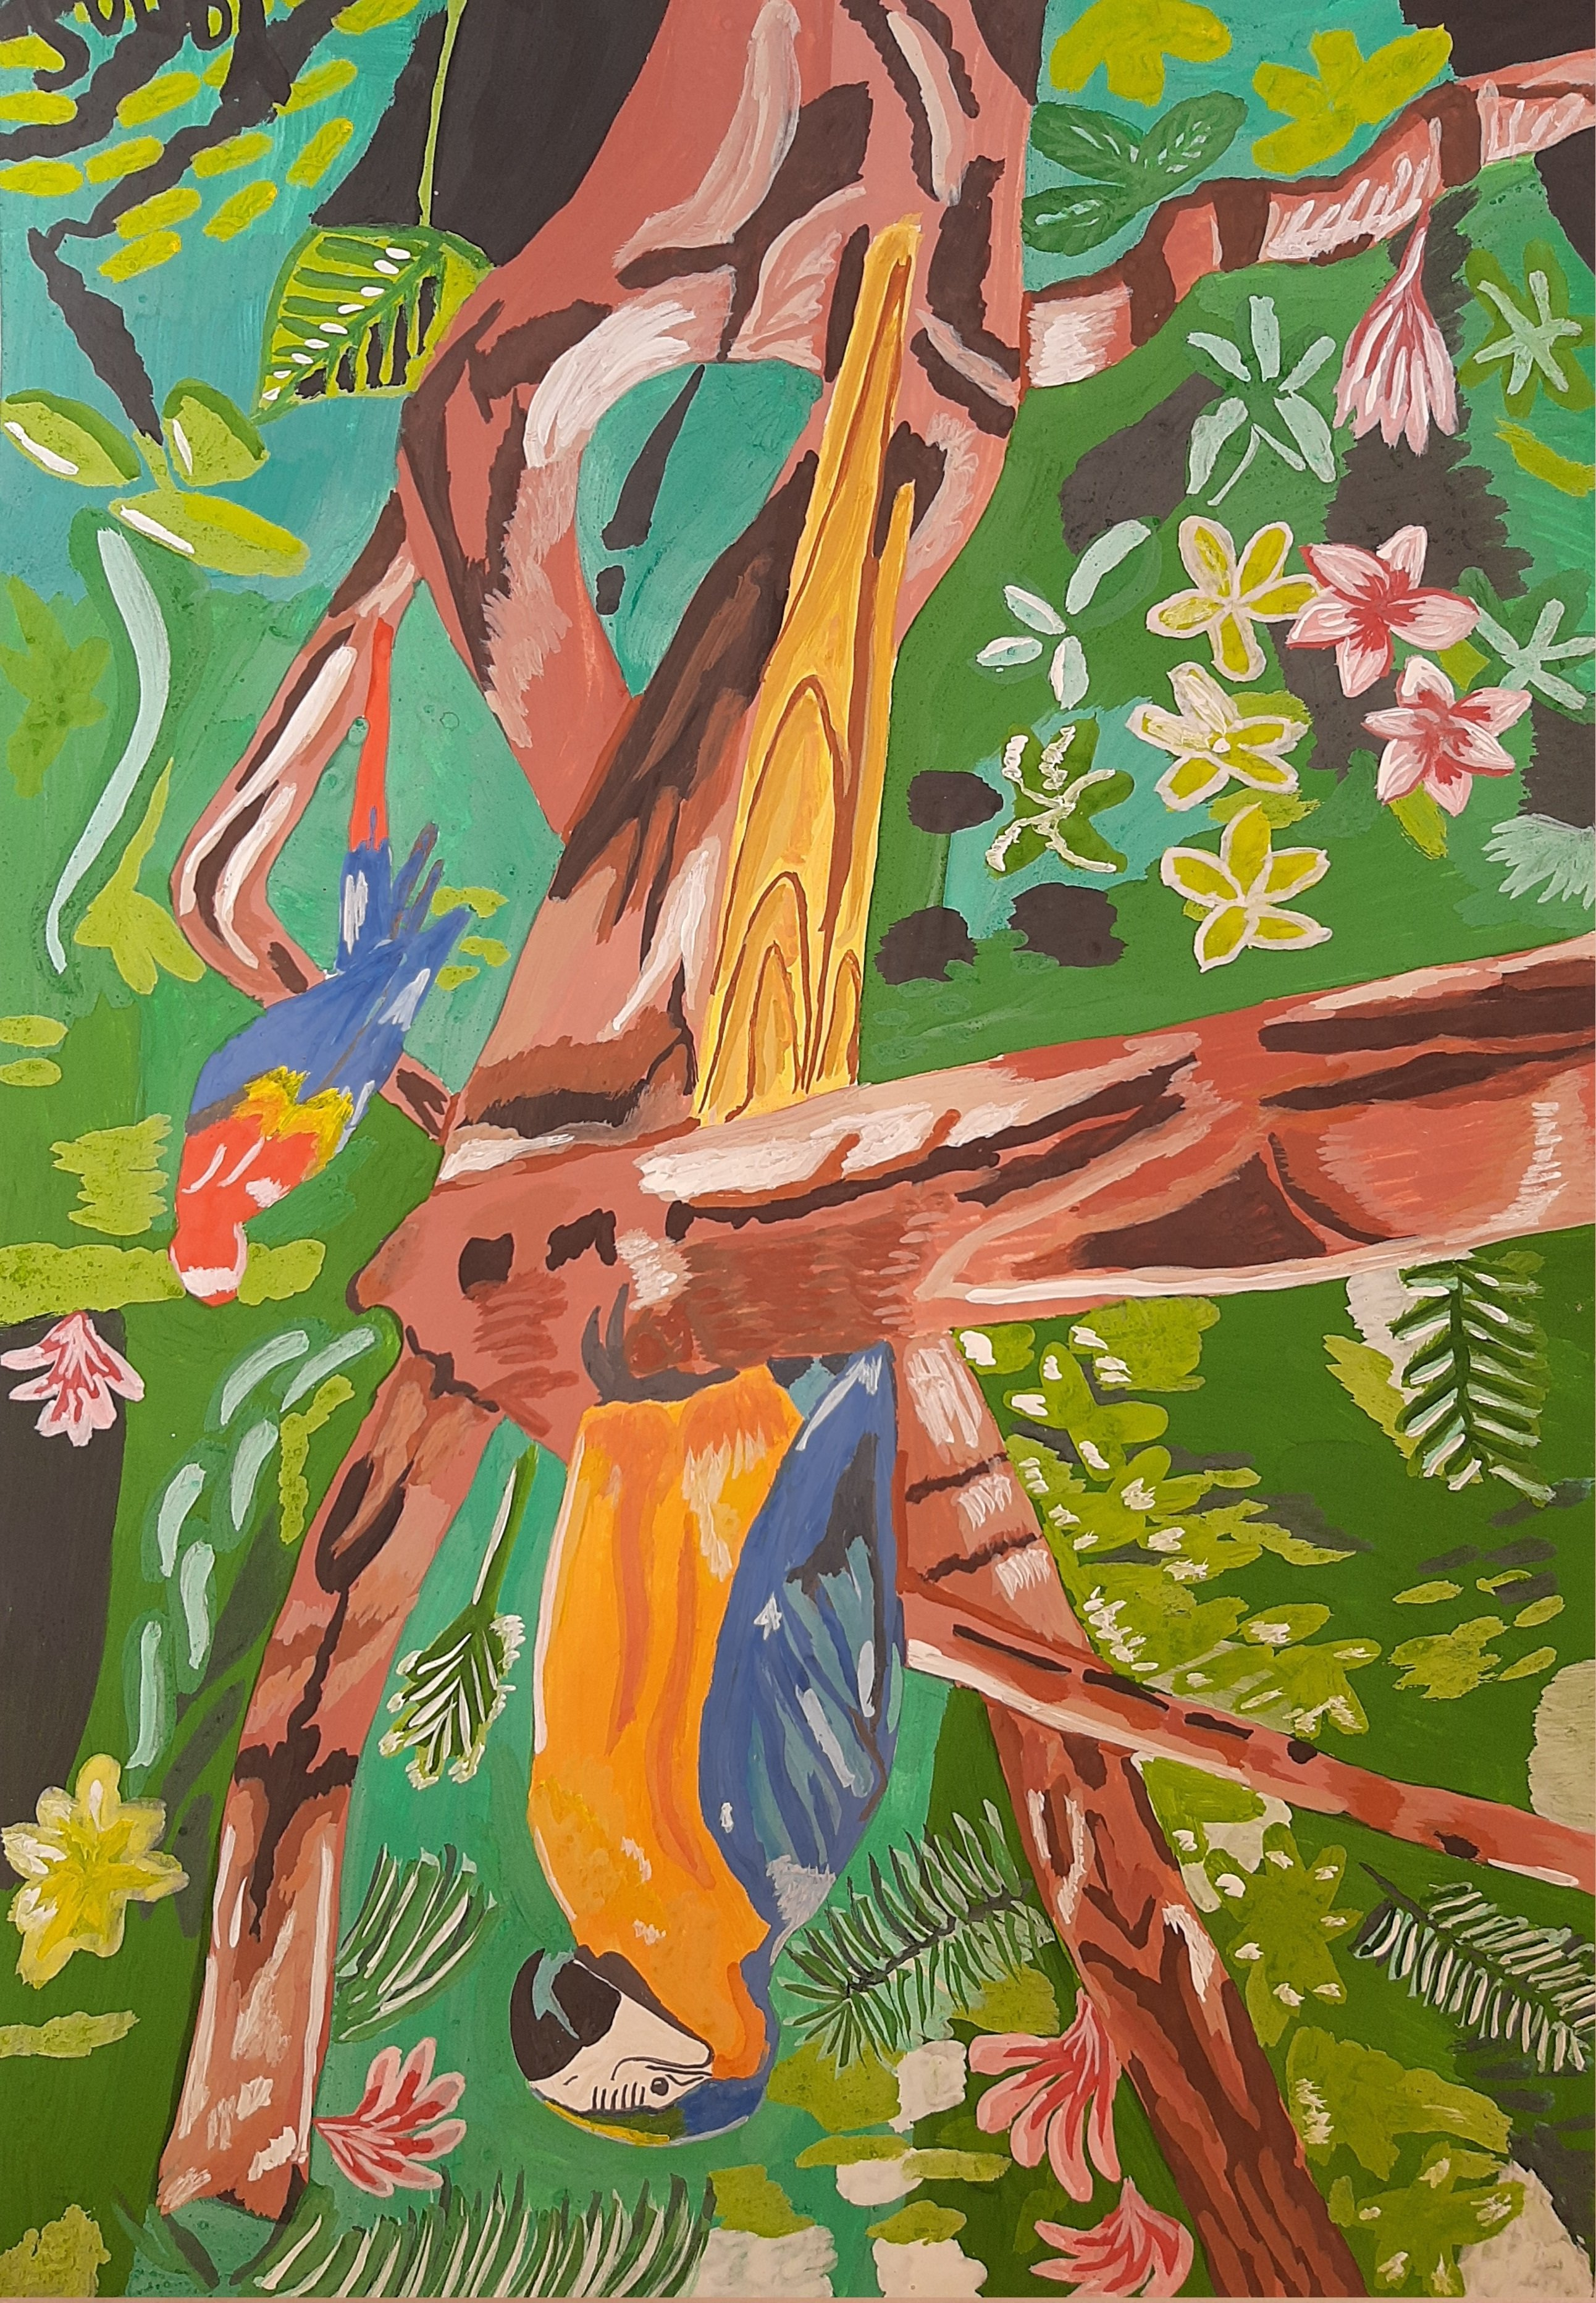 Yana Syskova; Parrots In Rainforest, 2020, Original Painting Other, 42 x 29.7 cm. Artwork description: 241 Gouache on paper. ...